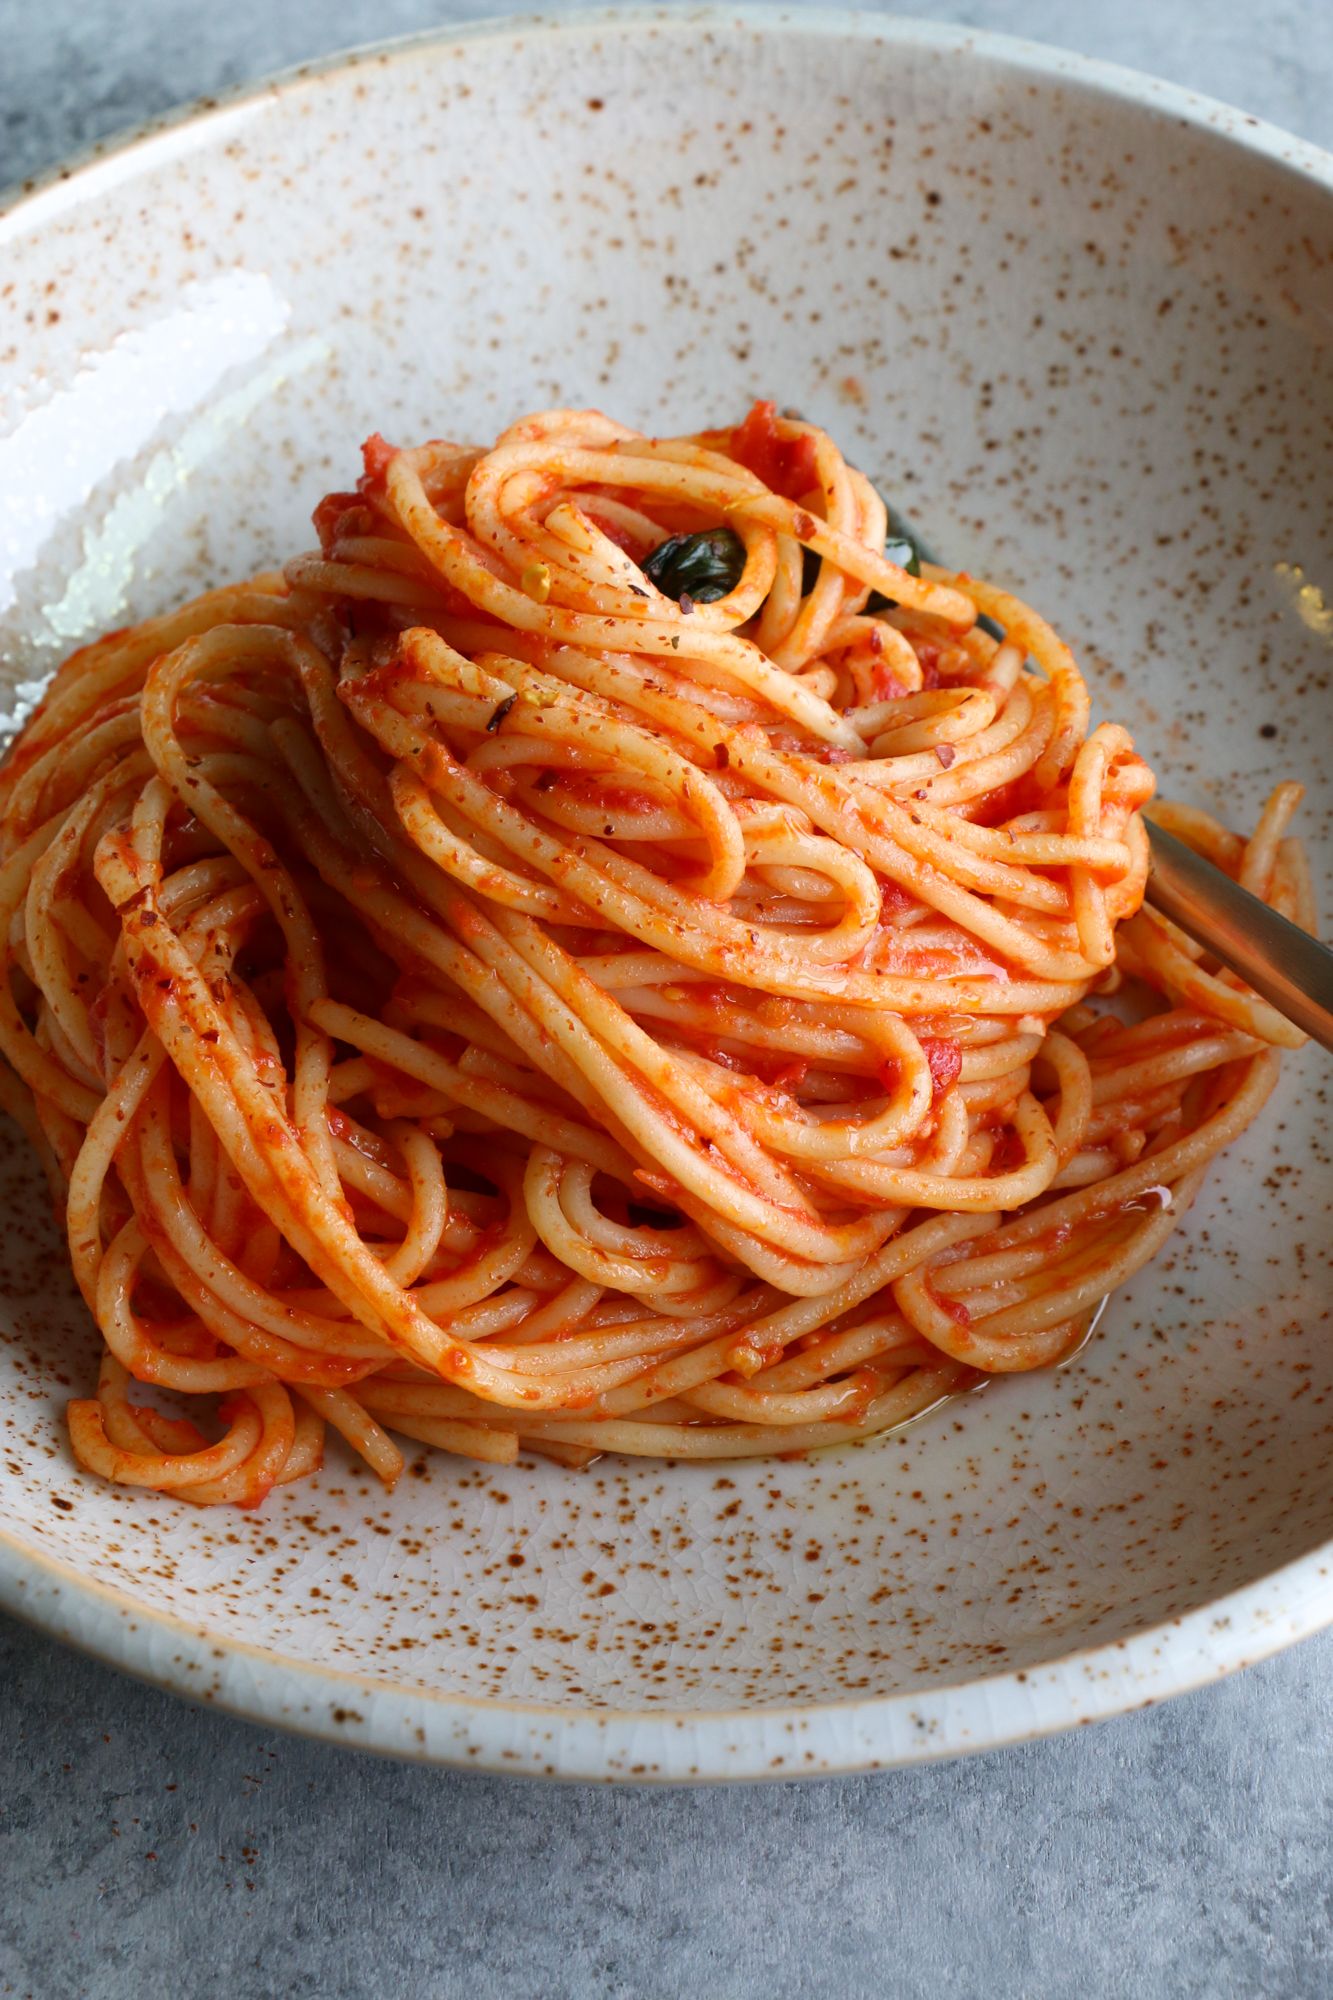 The Best Spaghetti Ever and so easy to make! This recipe uses garlic, olive oil, canned San Marzano tomatoes, butter and more. Make this!